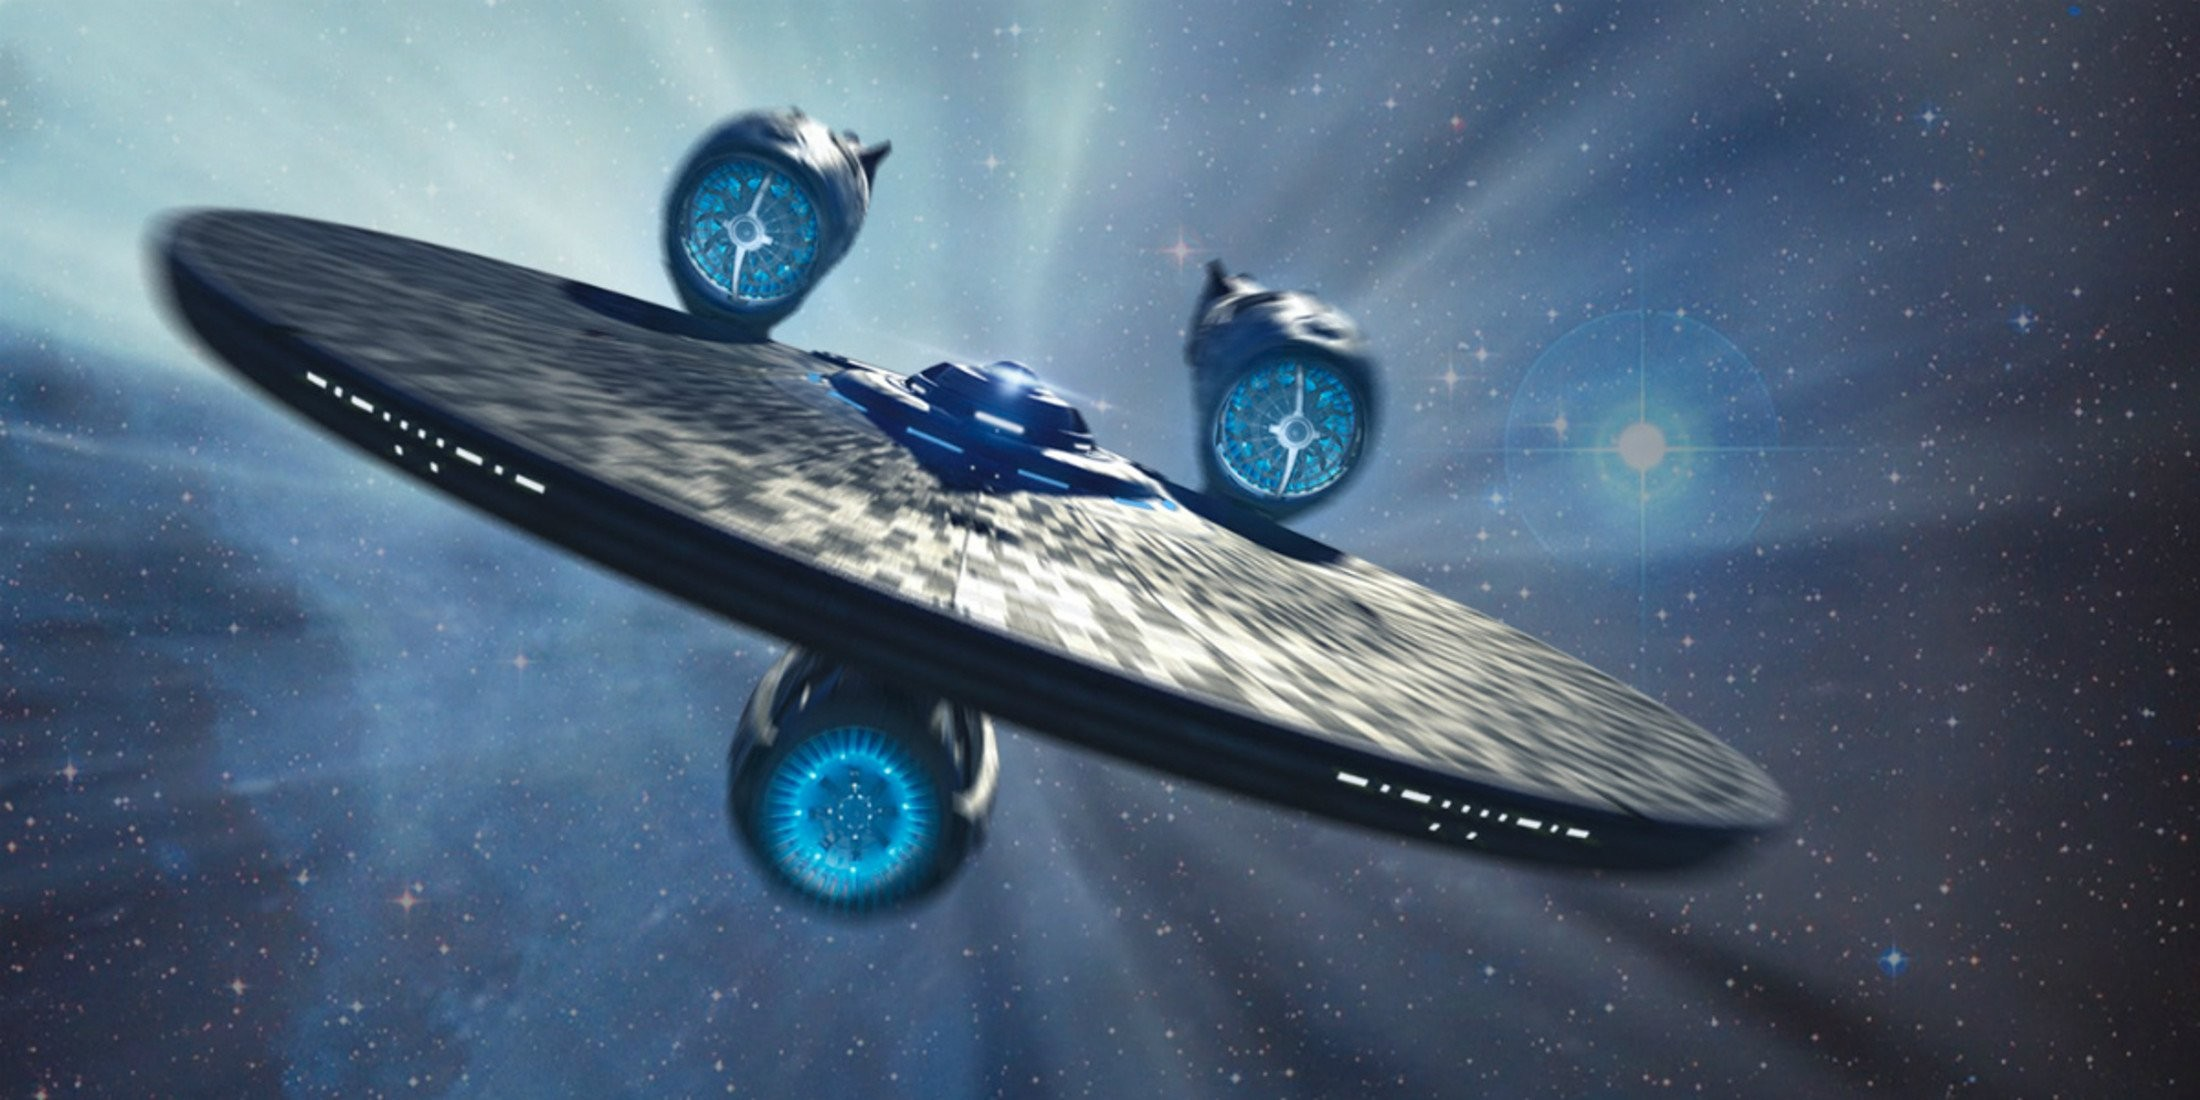 Star Trek 4: What's Happening With The Movie Franchise Now